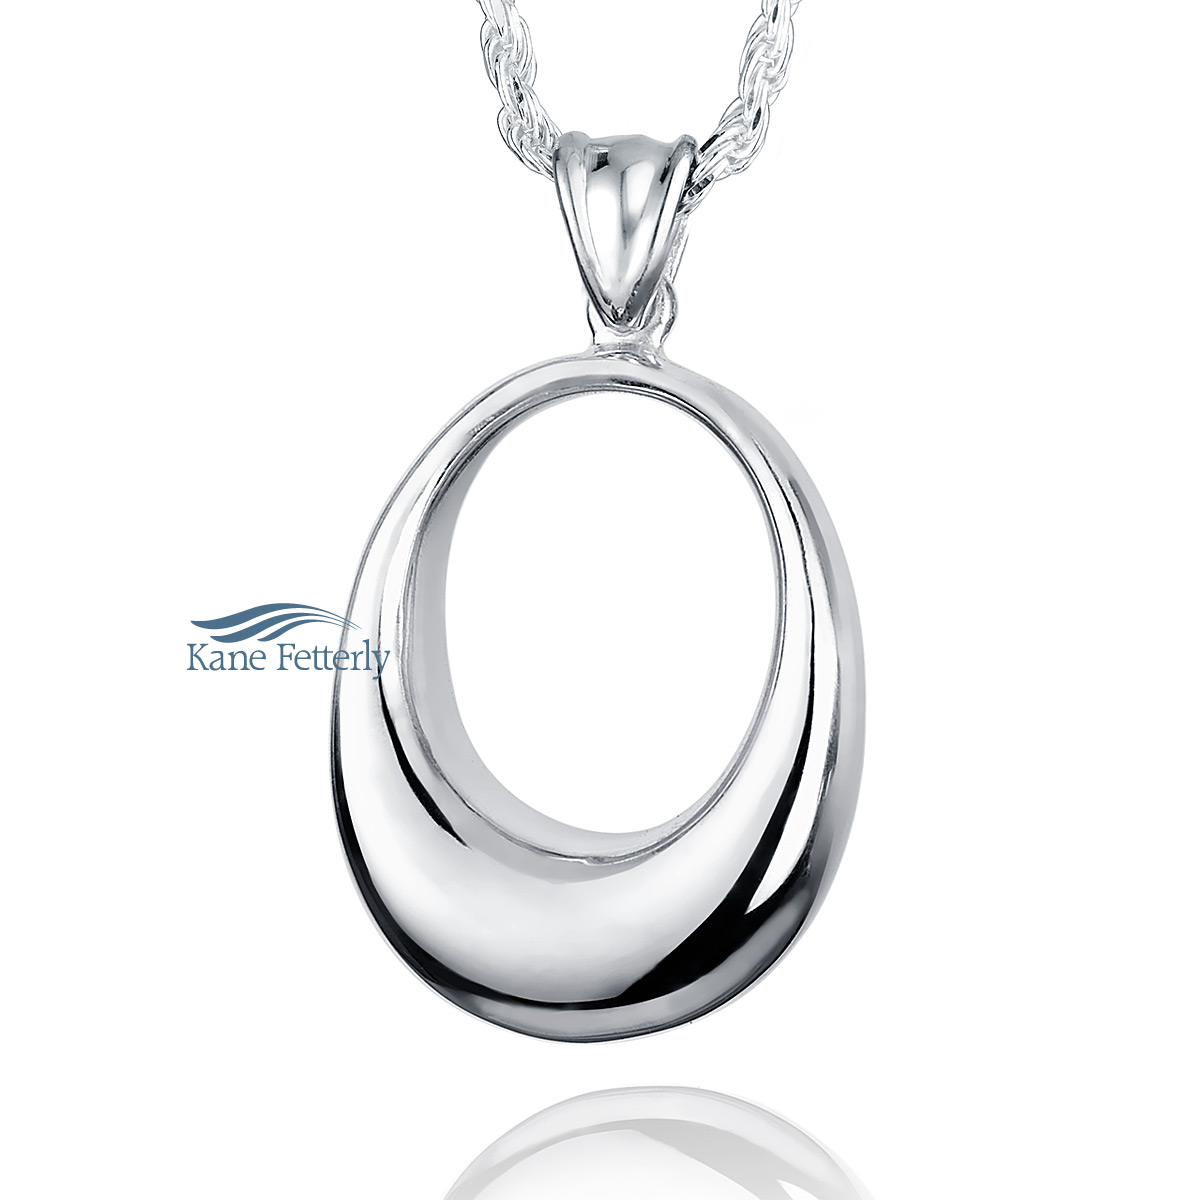 J0131 Oval pendant in sterling silver